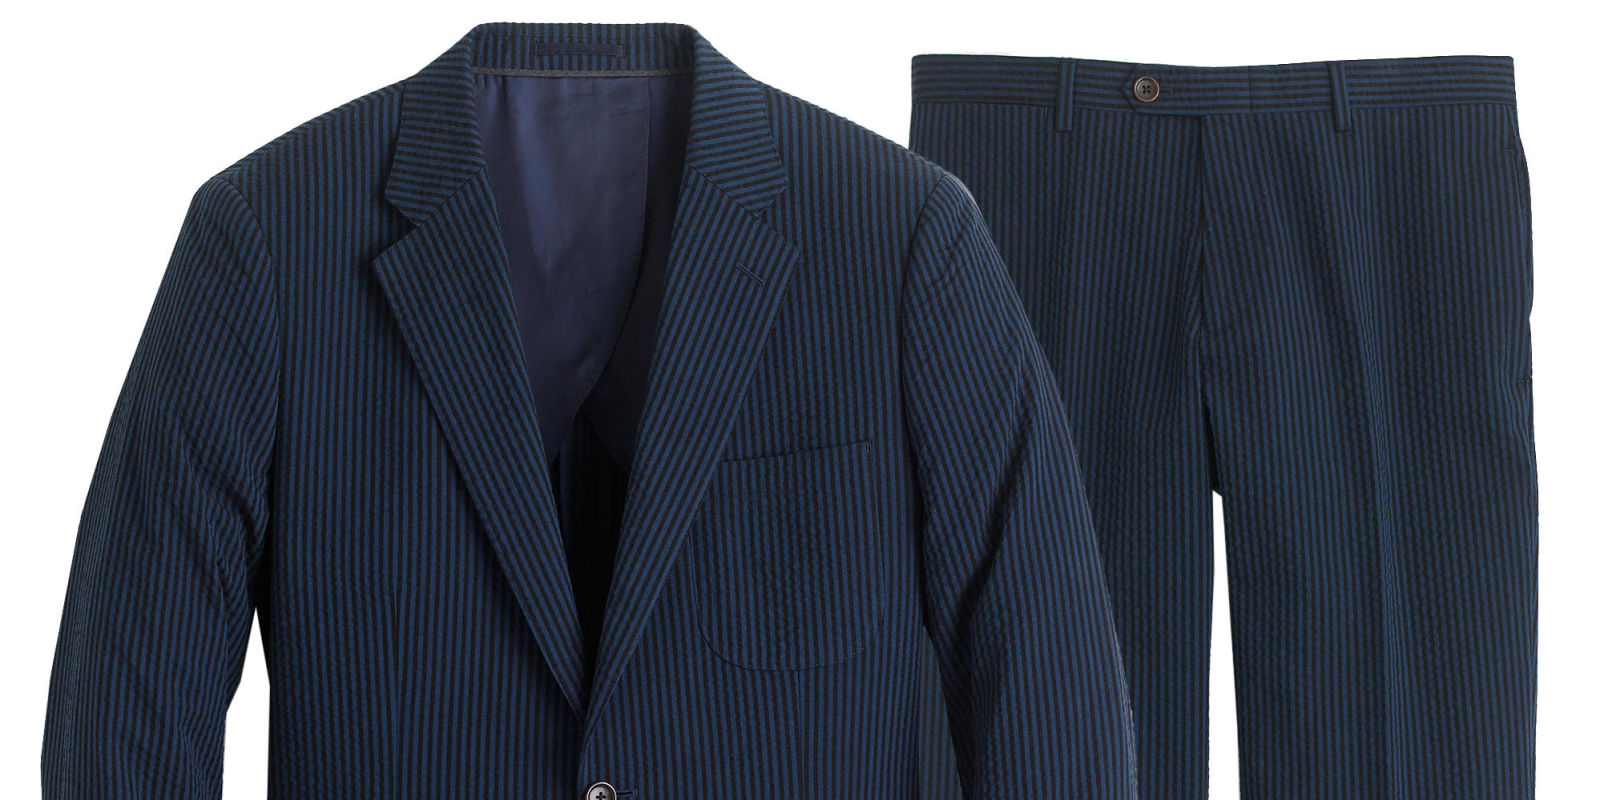 Oct 13, · Summer Suit Style, Fabric and Lining. When buying a comfortable summer suit, men are wise to start with the fabric. Indeed, most fashion gurus suggest eschewing wool in favour of lighter materials like cotton or autoebookj1.gar: Scott Purcell, Frank Arthur.